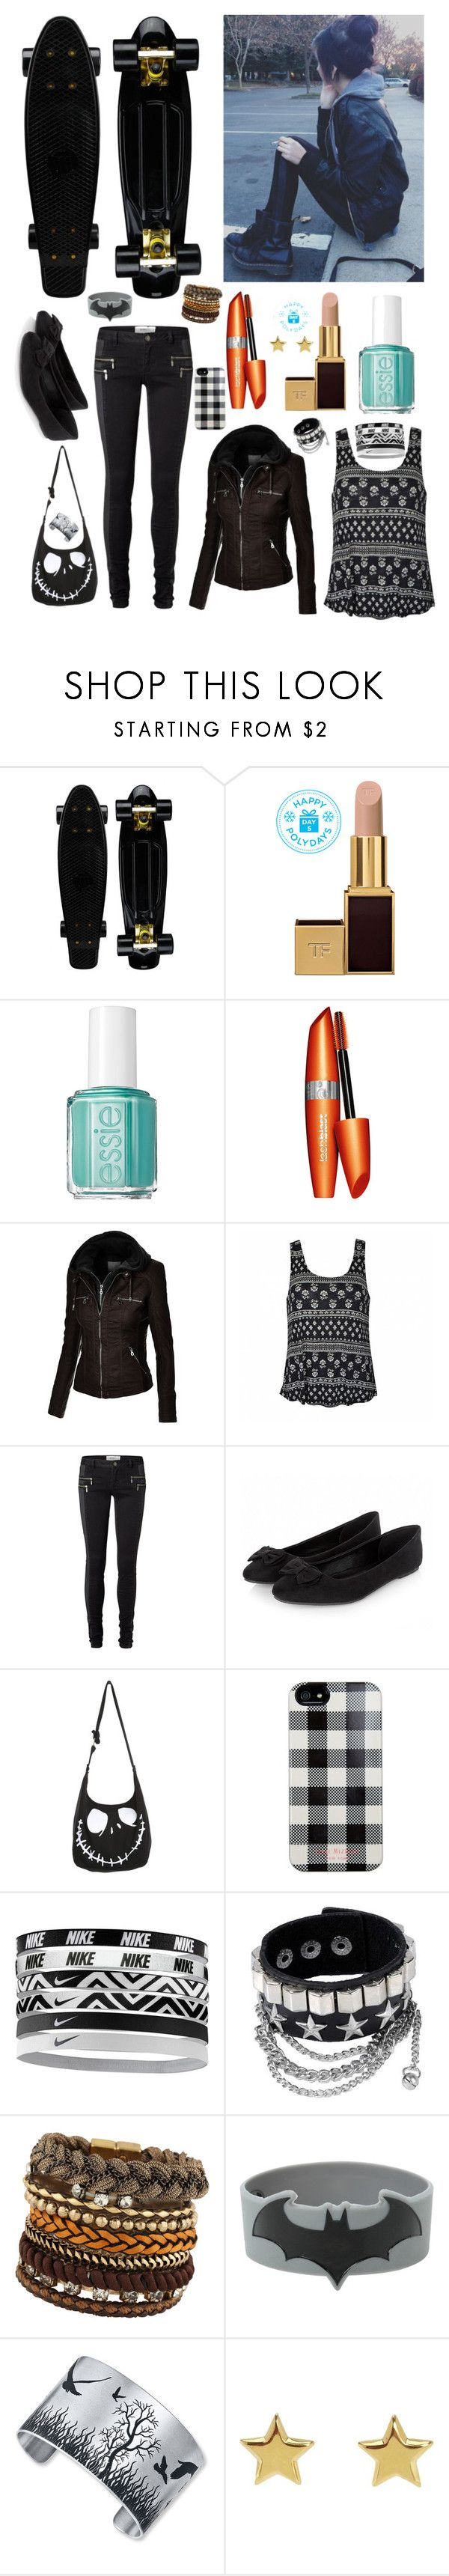 """Danny Smith"" by nationalnerd ❤ liked on Polyvore featuring Tom Ford, Essie, COVERGIRL, Ally Fashion, Vero Moda, Isaac Mizrahi, NIKE, ALDO and SonyaRenée"